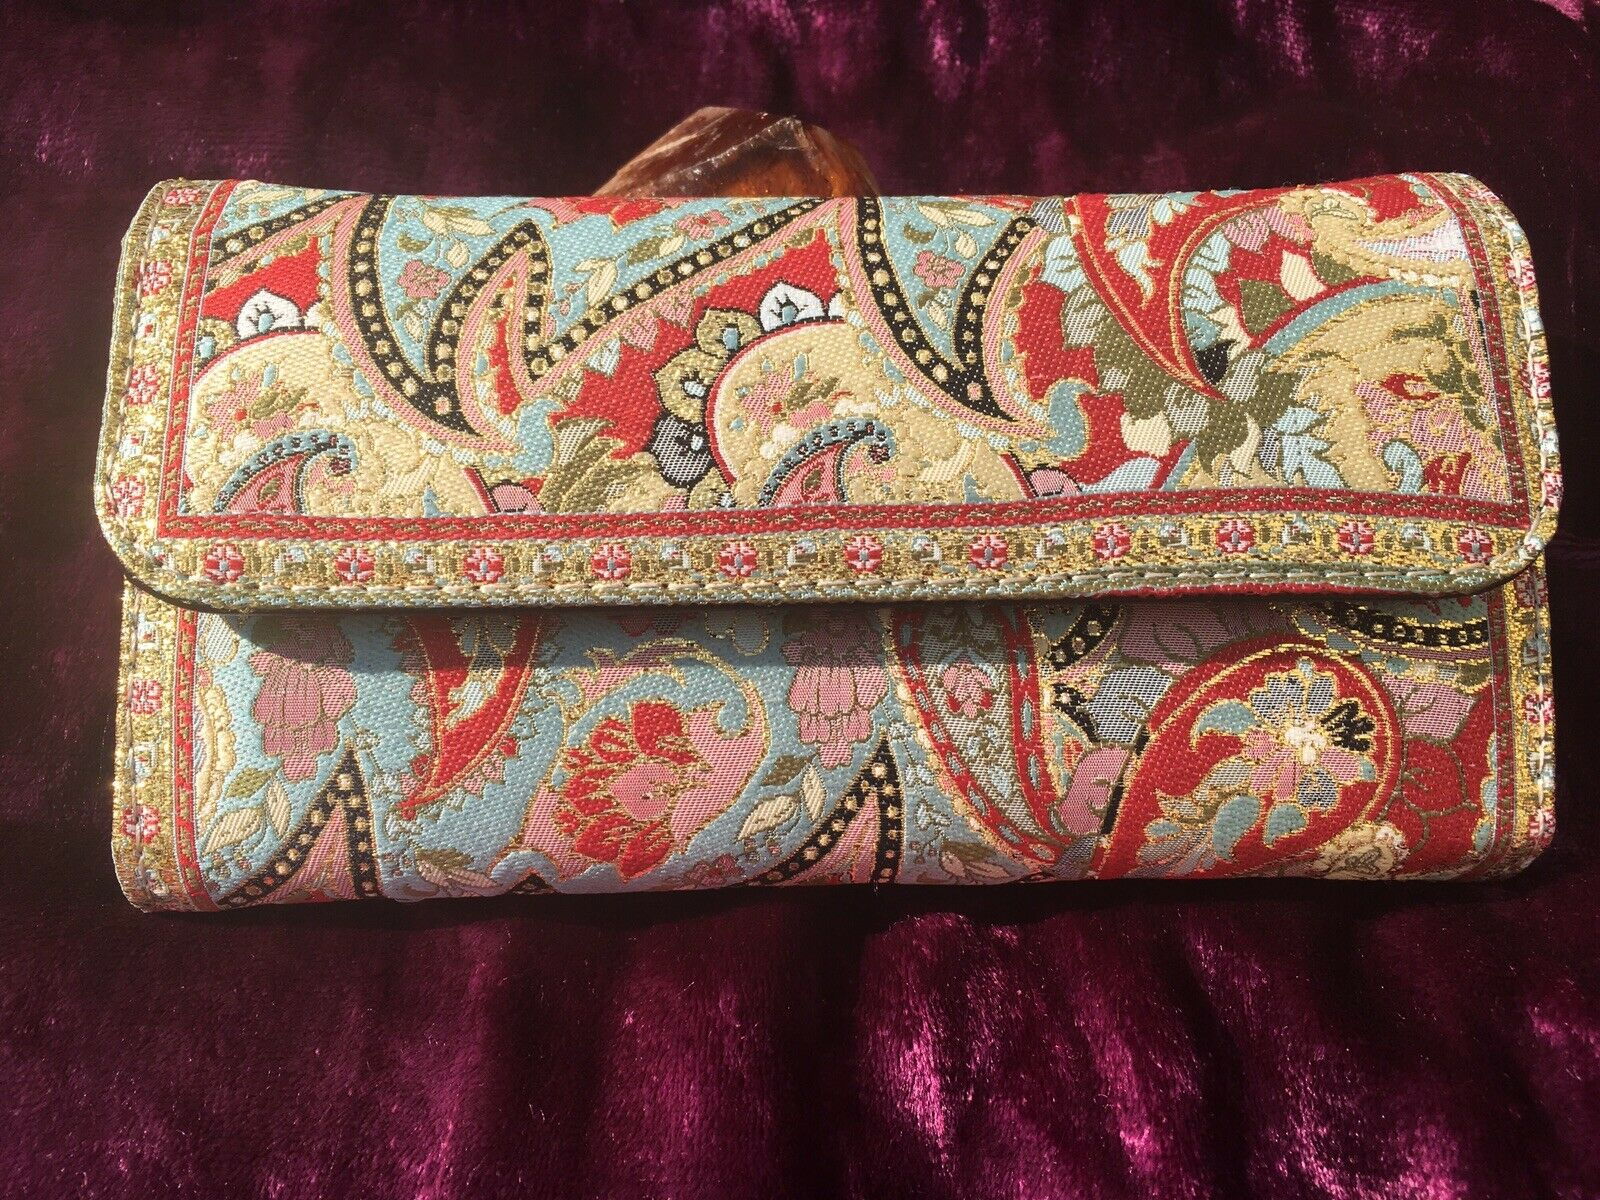 Paisley Gold Embroidered Large Purse, Clutch, Wallet, Ethnic, Boho, Ladies Gift